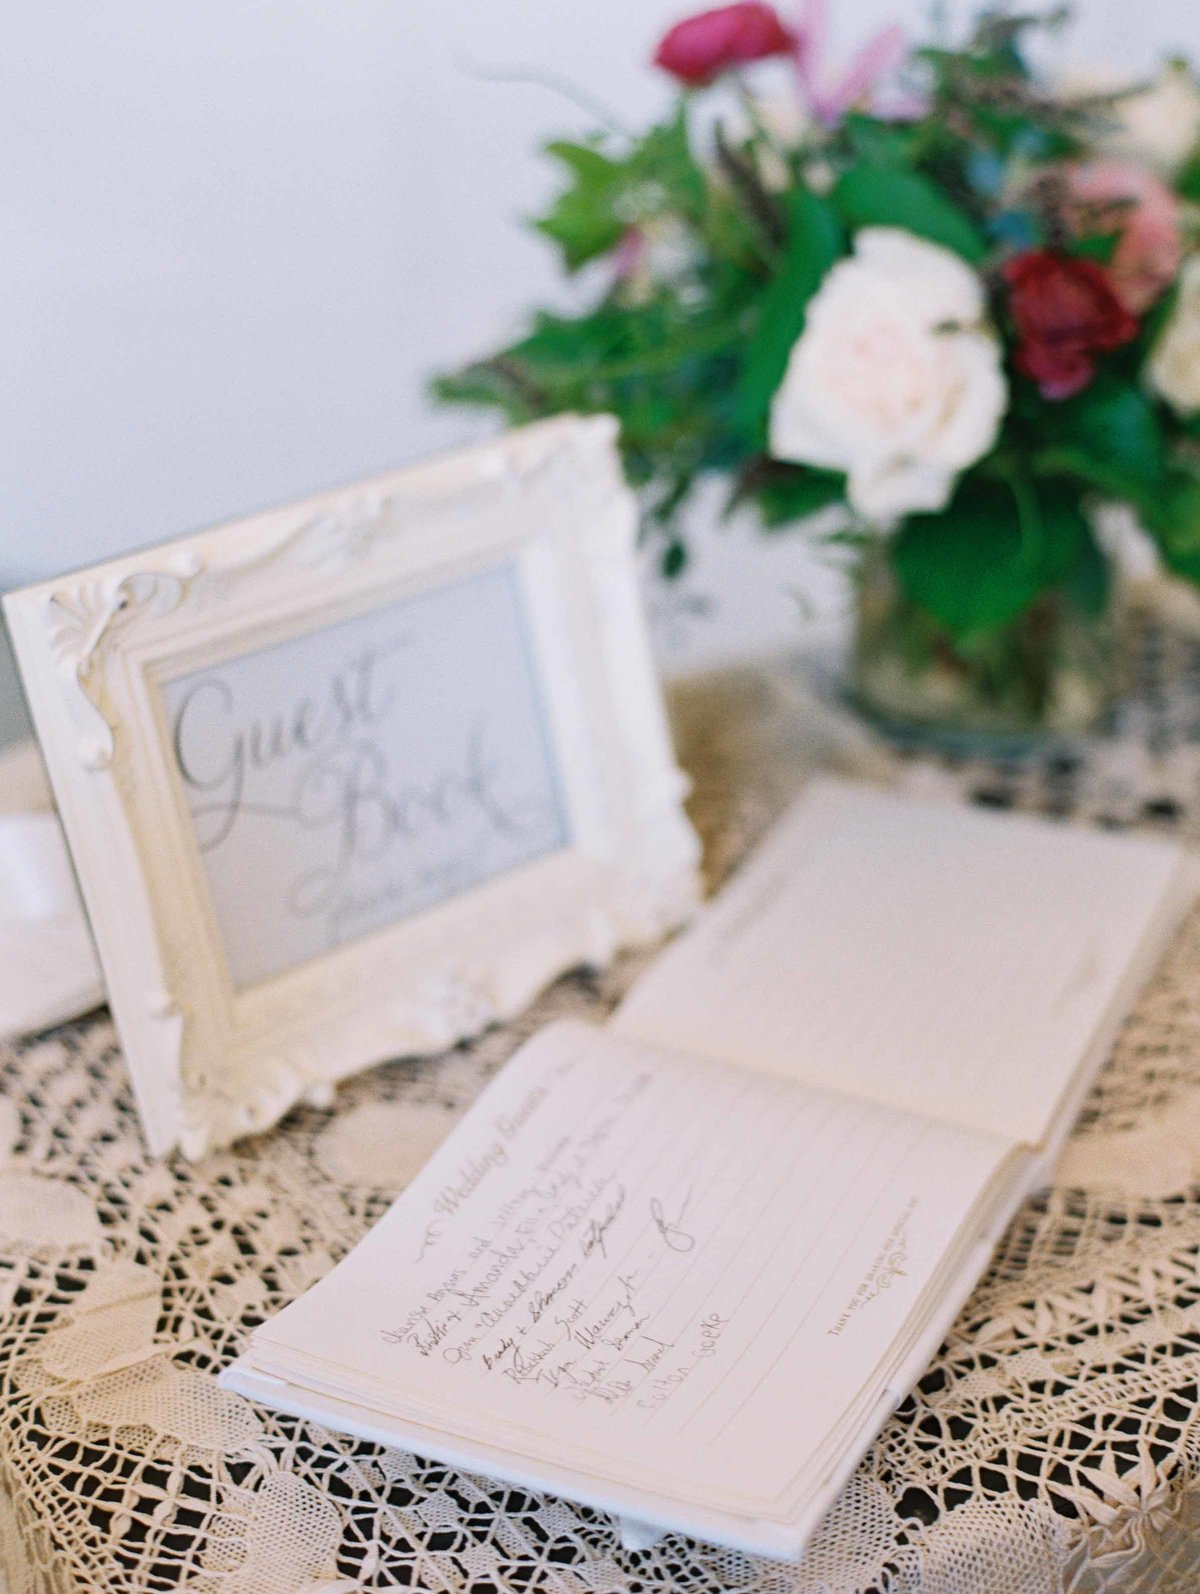 Angel_owens_photography_wedding_oliviarobert103